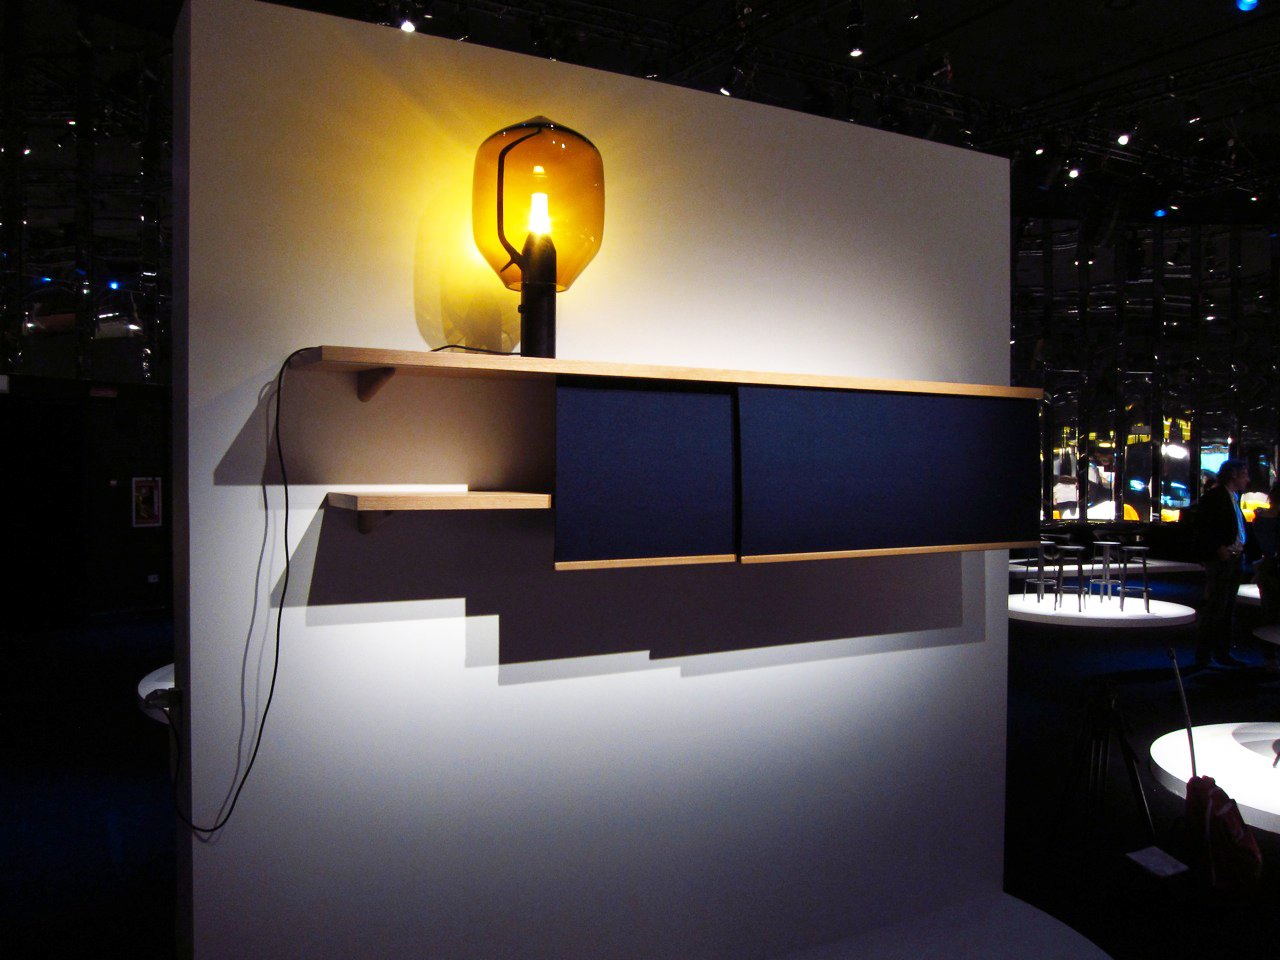 Les frères Bouroullec debuted a new set of shelves with sliding felt panels. Last year's lighthouse lamp (one of our all-time favorites) helped set the scene.  Milan 2011: Day One by Amanda Dameron